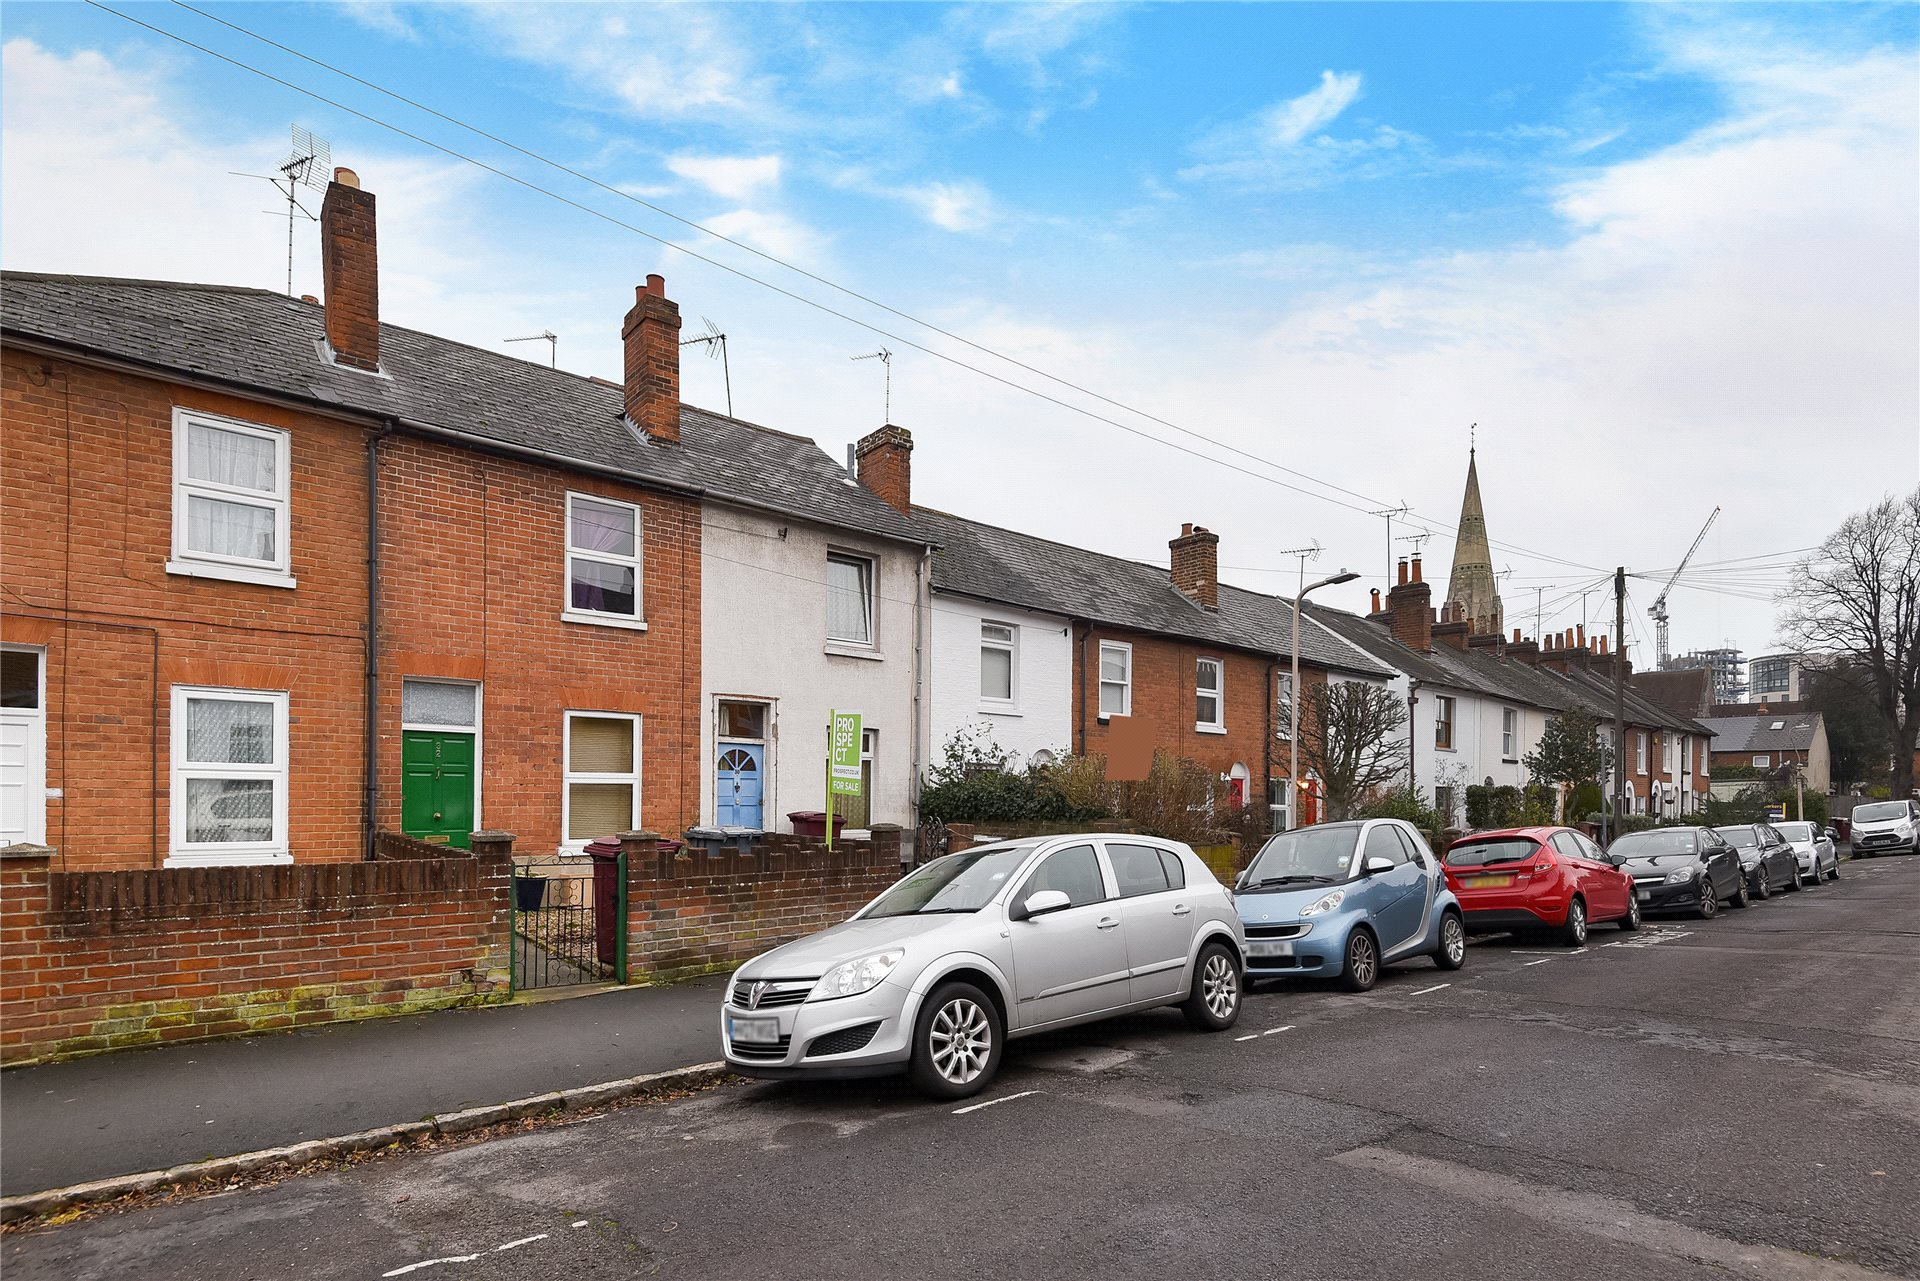 2 Bedrooms Terraced House for sale in Princes Street, Reading, Berkshire, RG1